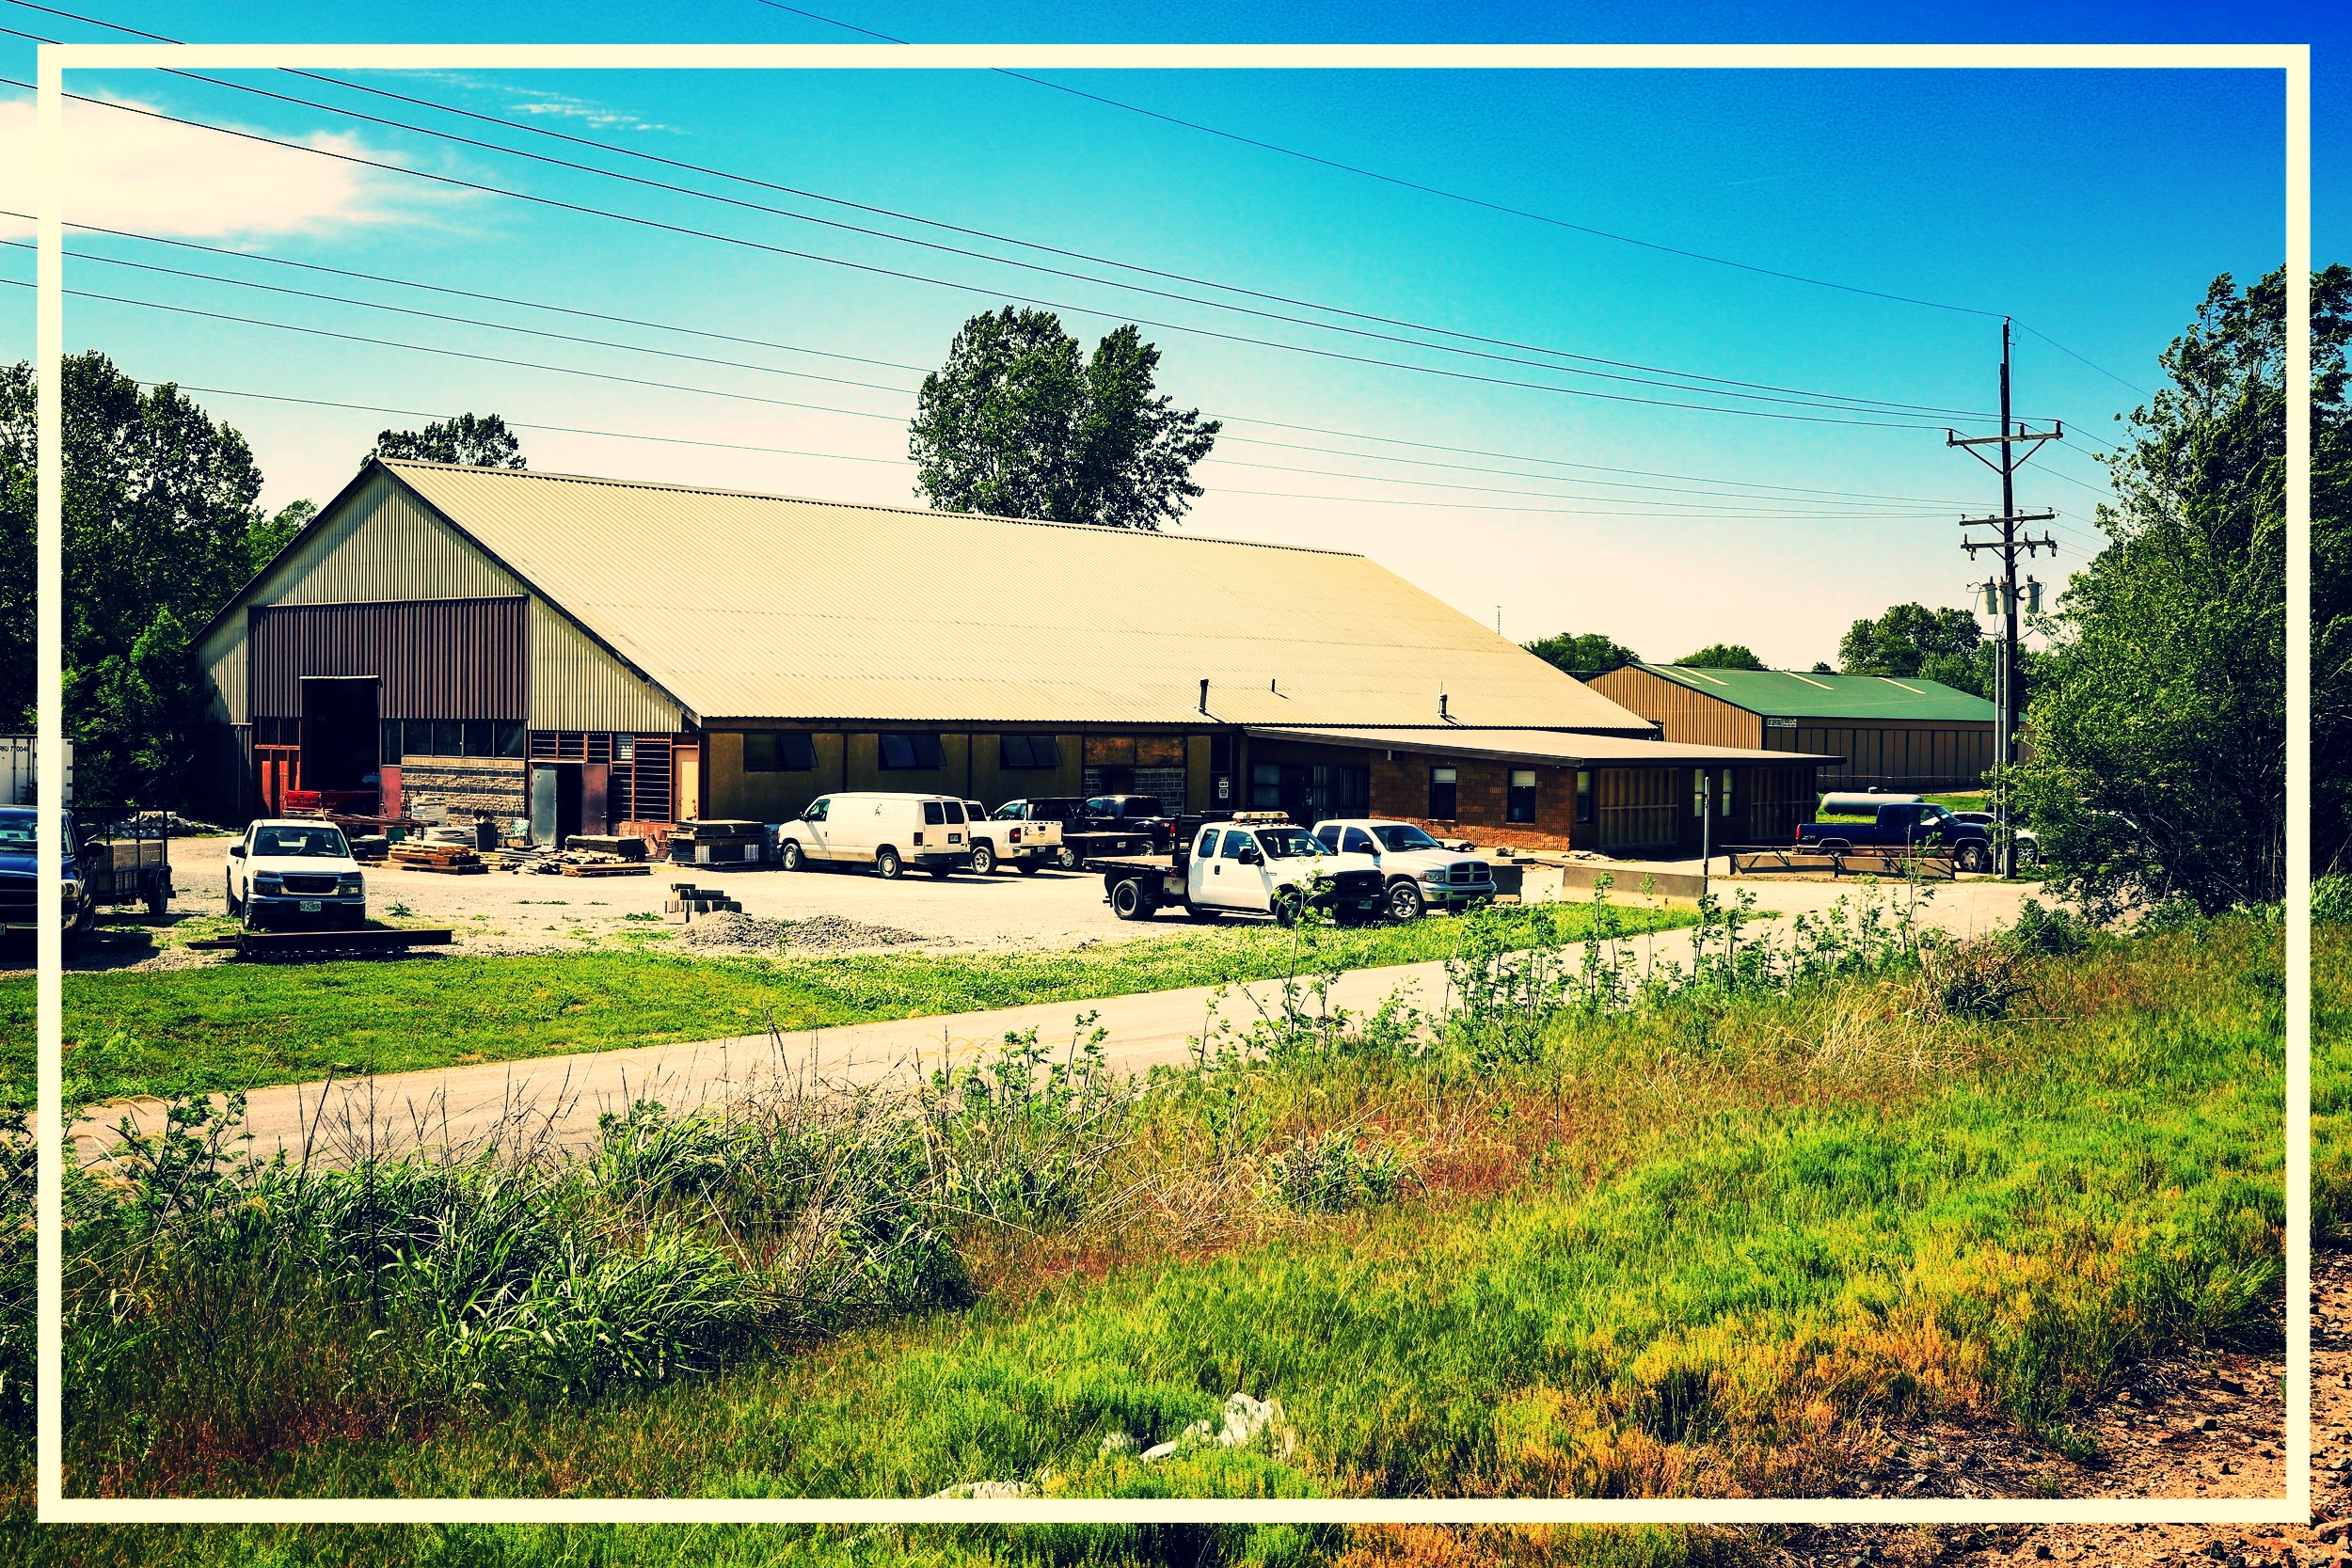 Pioneer Material Inc. is located at 3910 Waterworks Rd. St. Joseph, MO 64505.